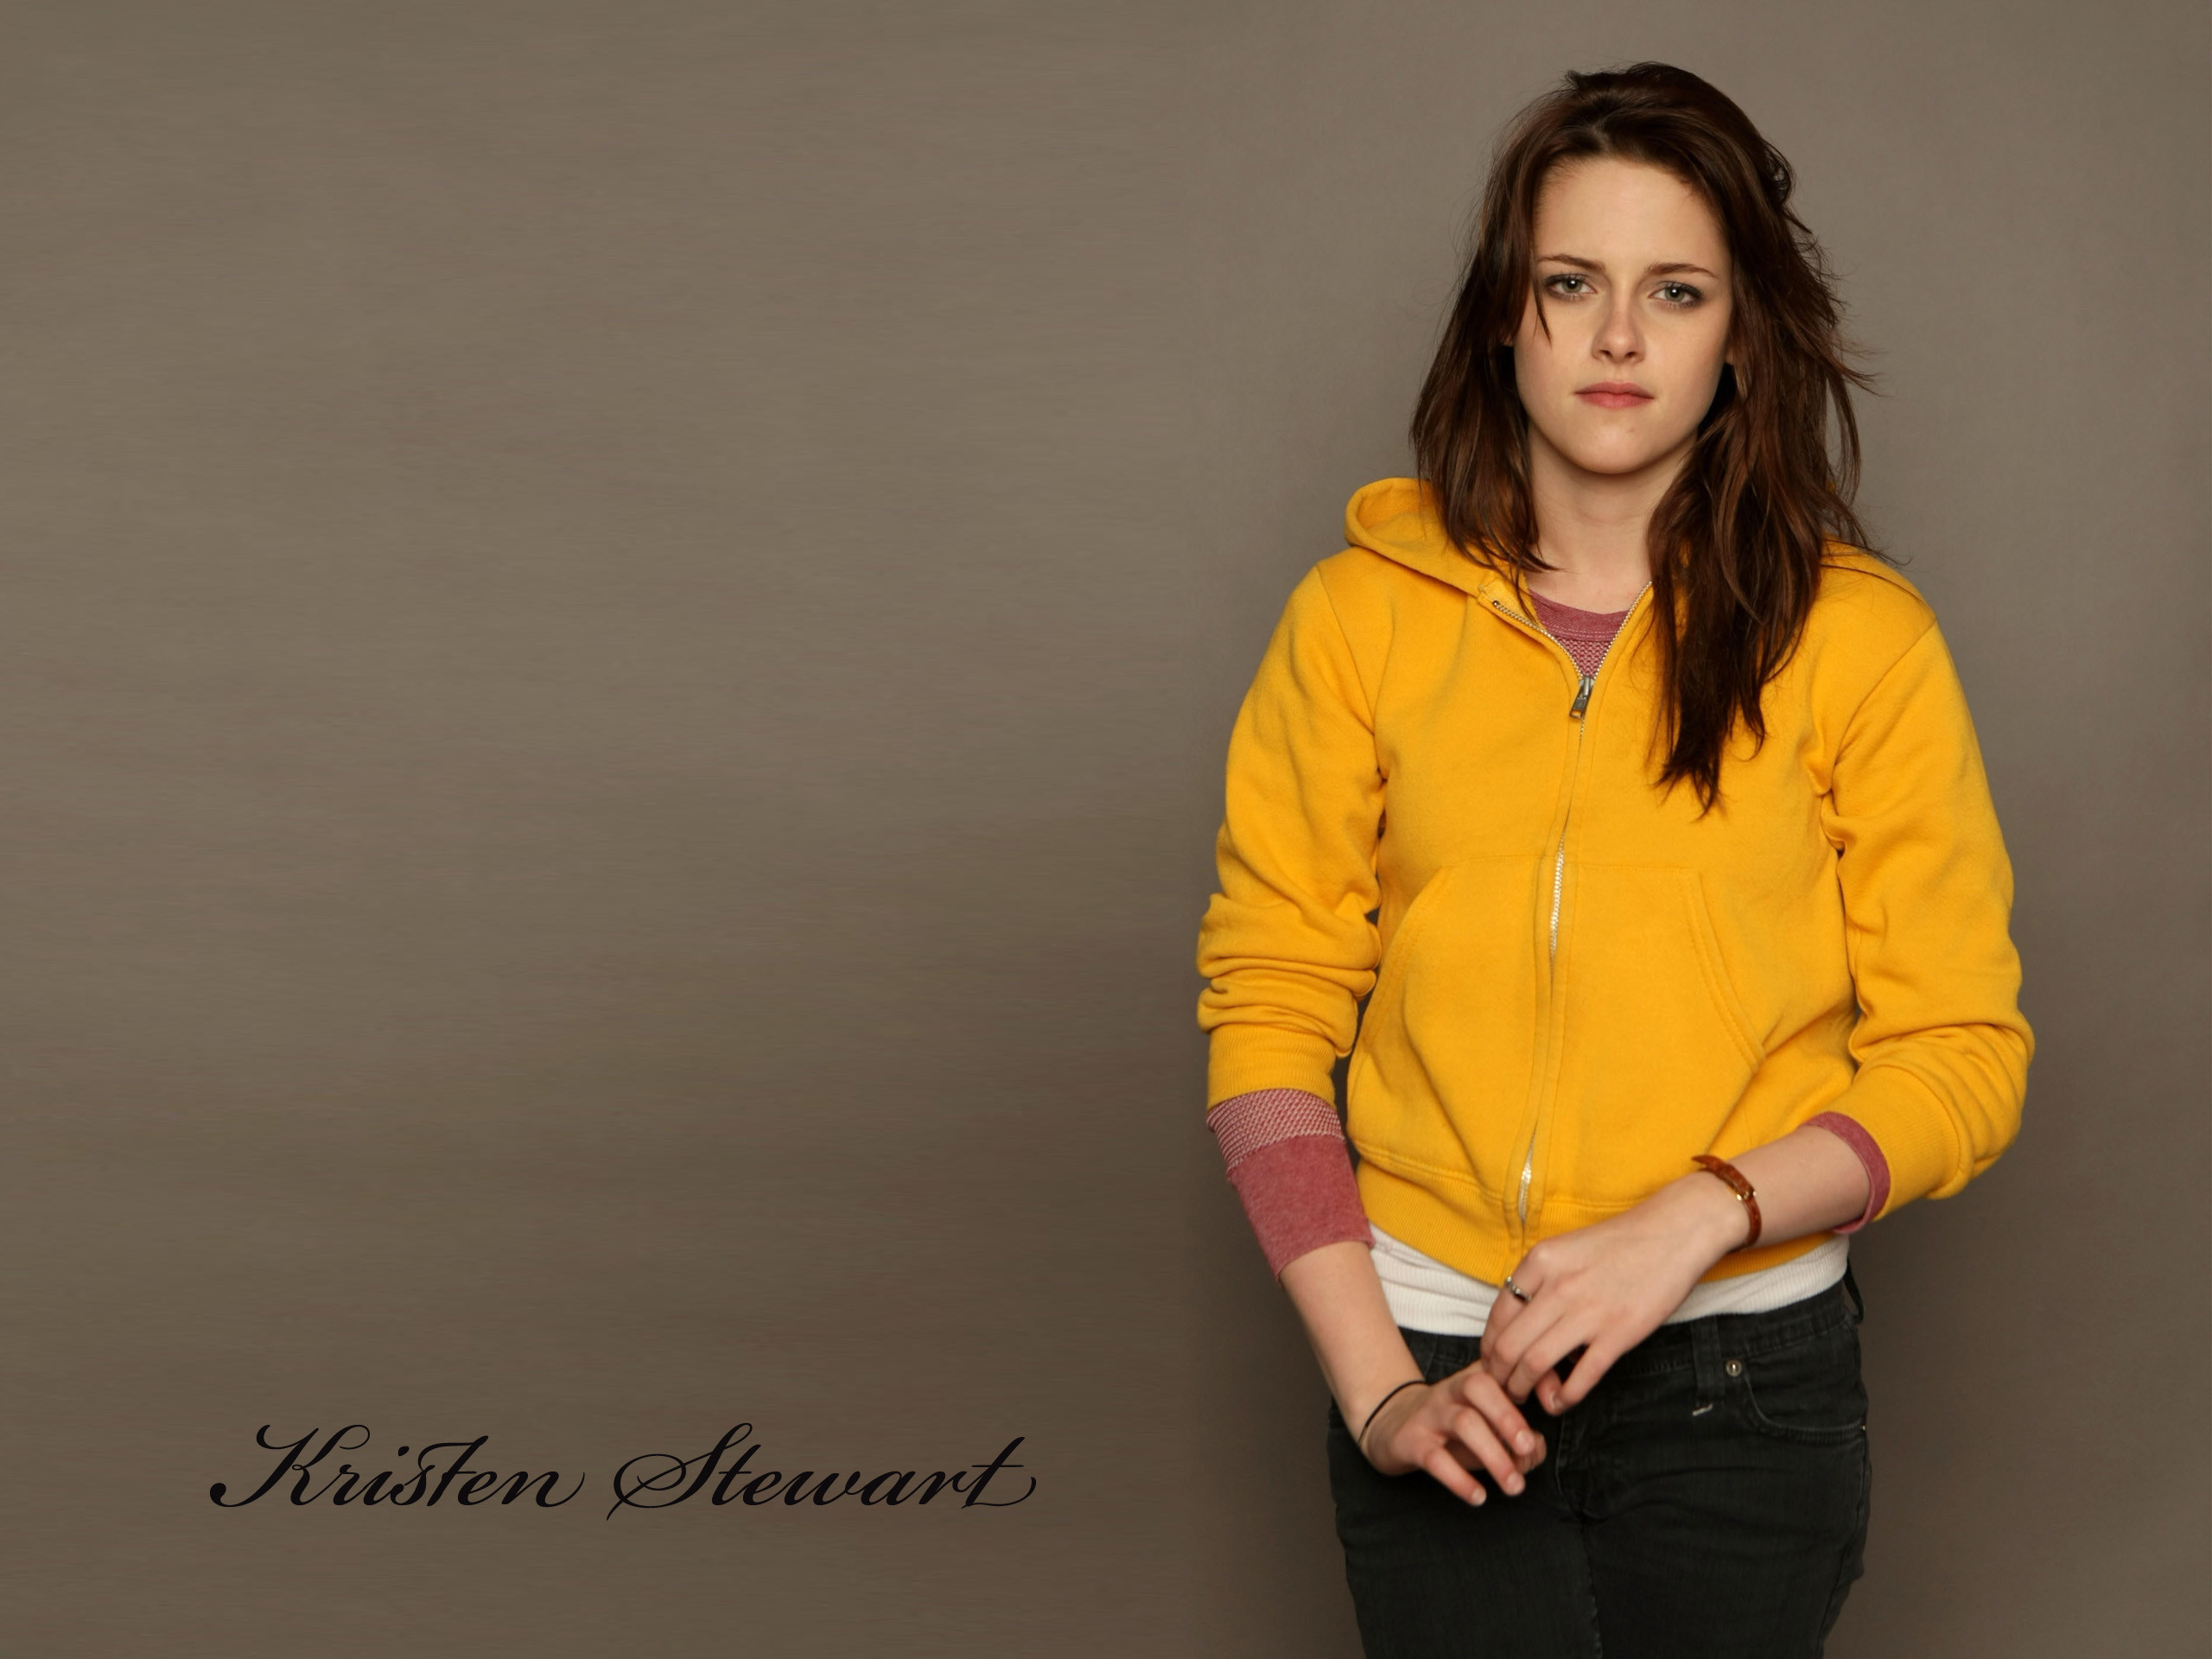 Res: 2560x1920, Kristen Stewart HD Wallpapers (6)